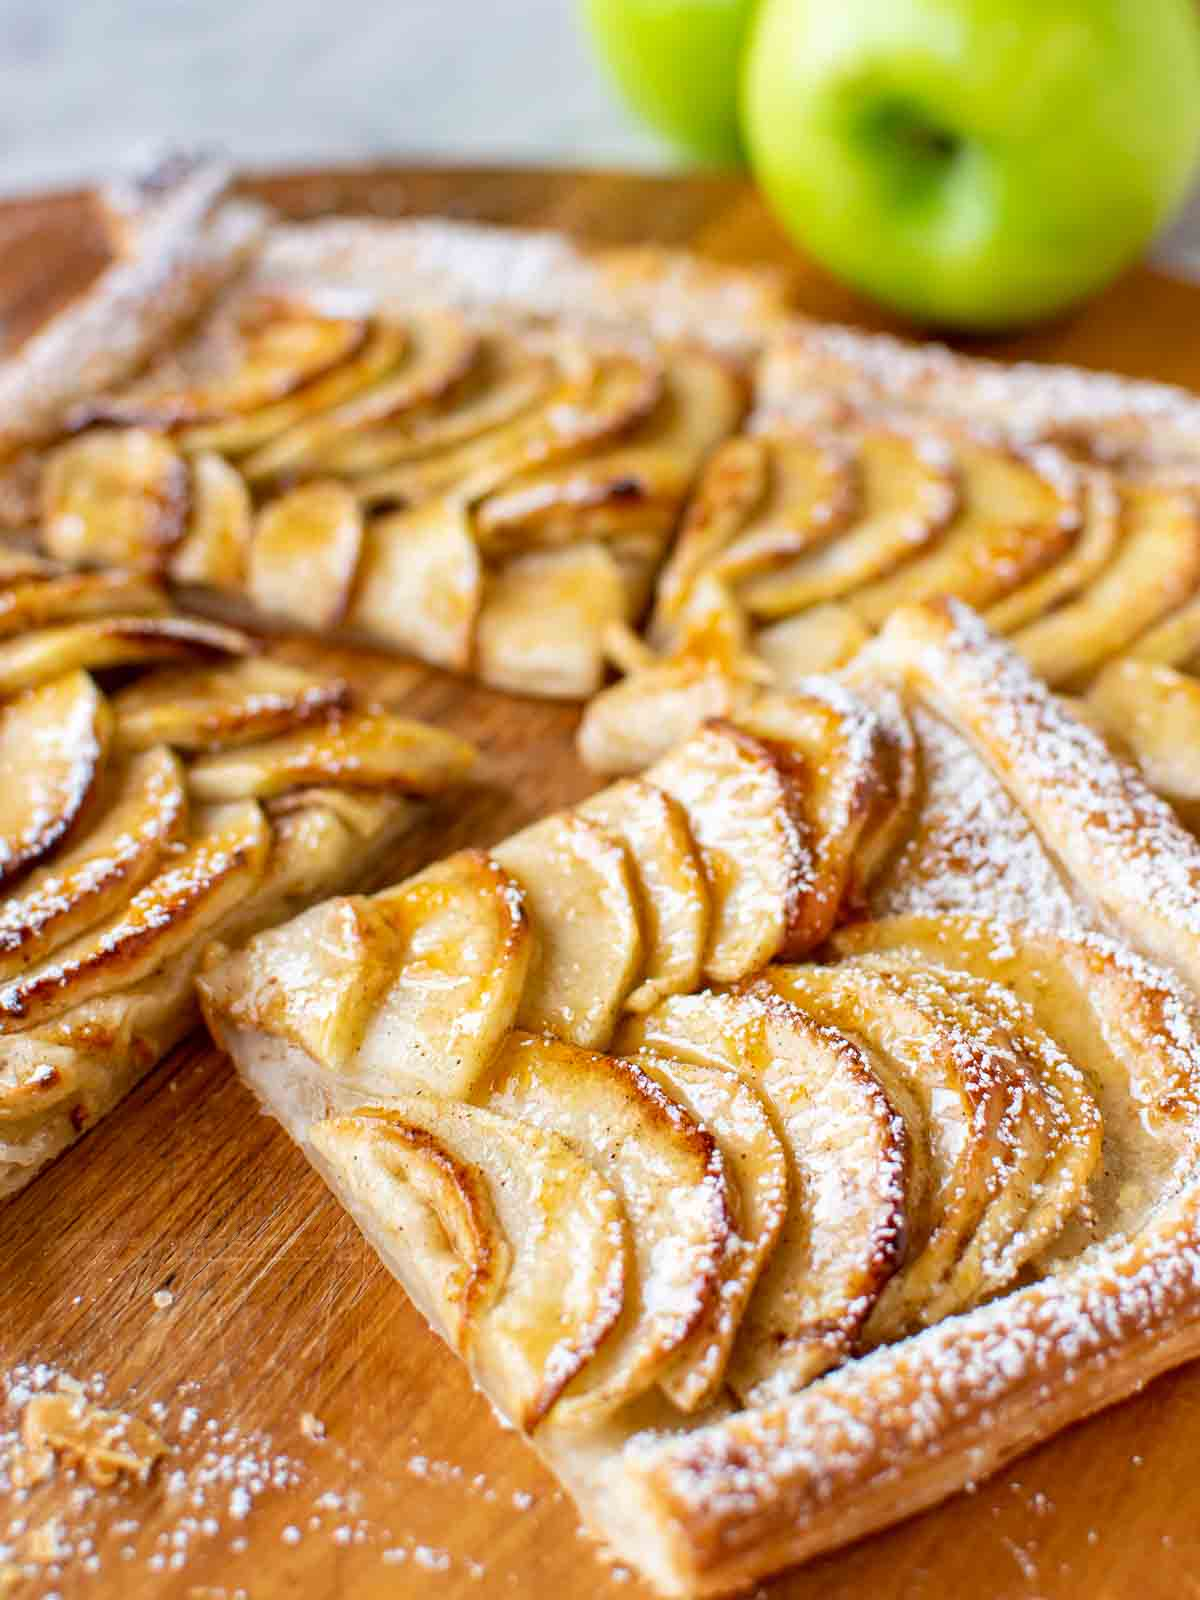 slices of puff pastry apple tart on wooden board, green apple in the background.